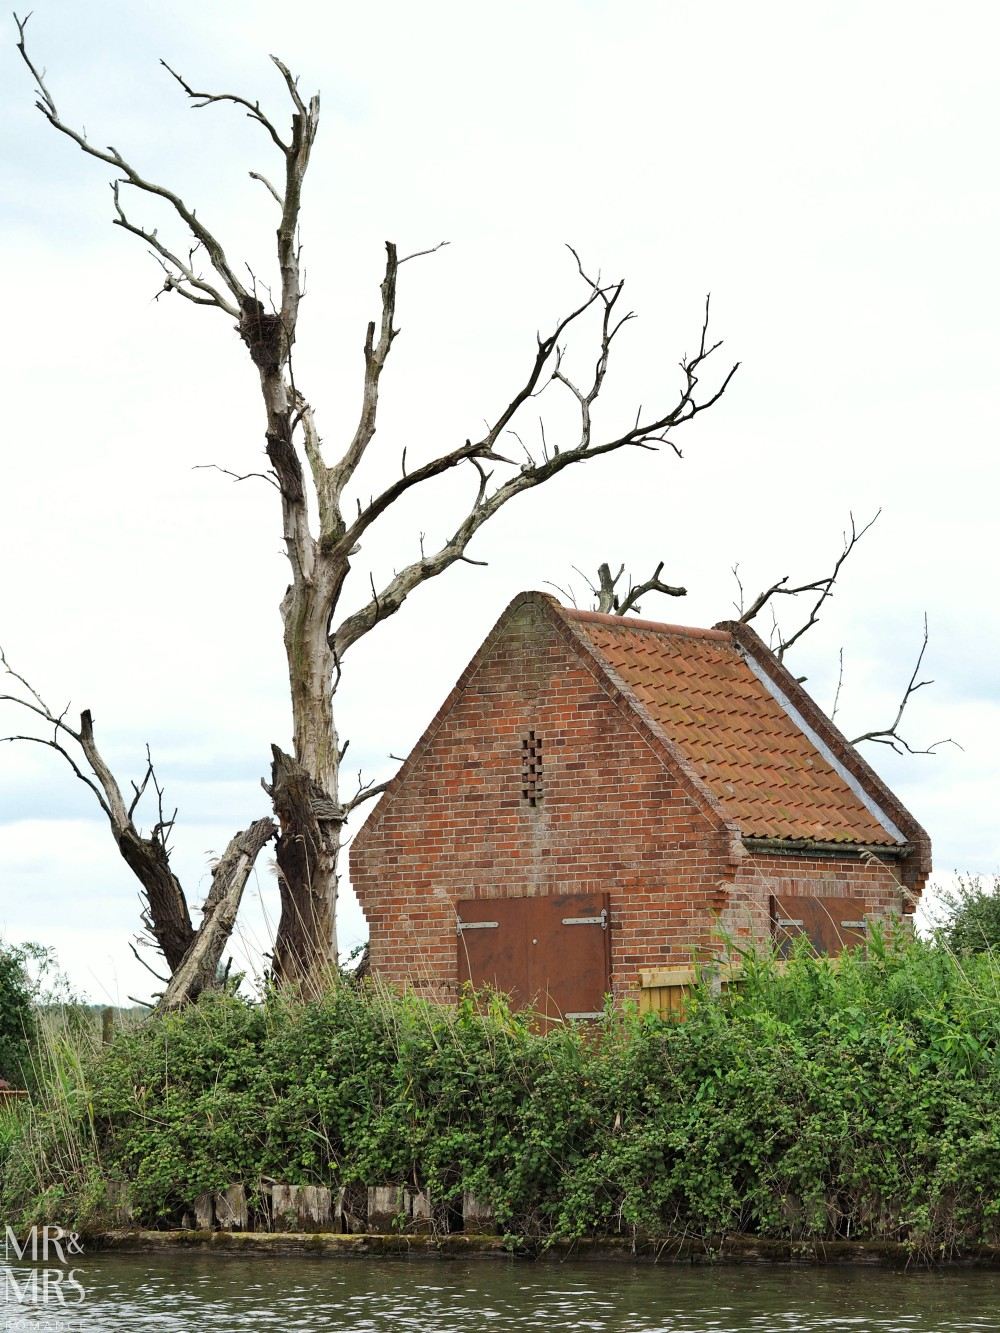 Boating holidays England - Norfolk Broads boat hire. Old hut